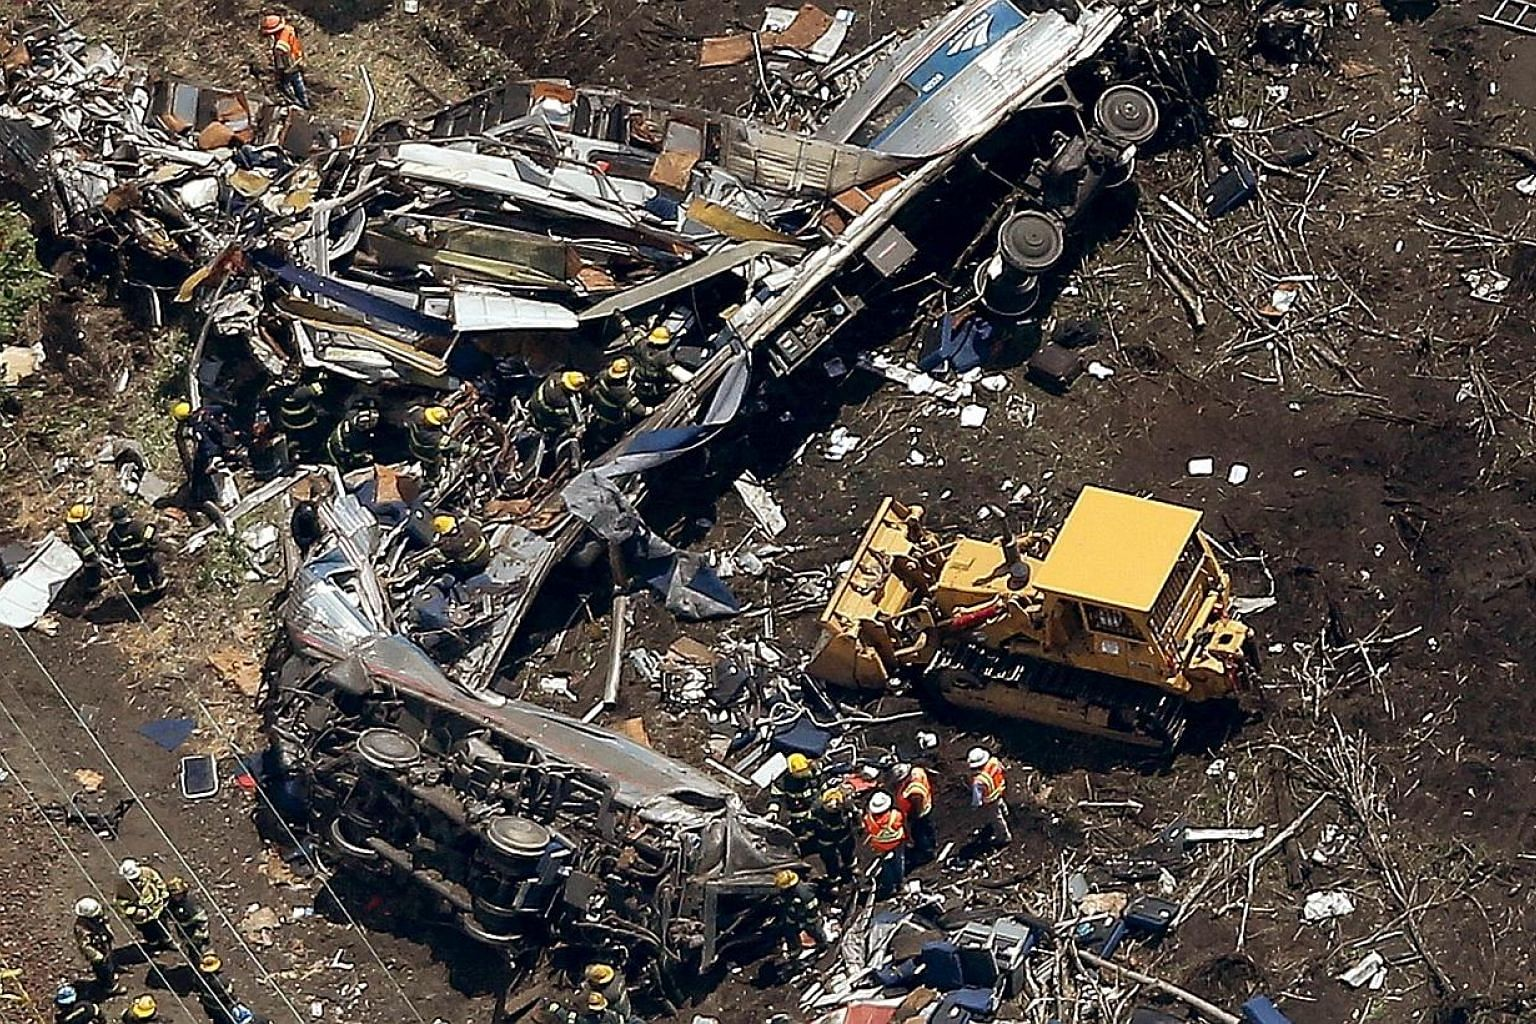 Investigators and first responders work near the wreckage of an Amtrak passenger train carrying more than 200 passengers from Washington, DC to New York that derailed late last night May 13 in north Philadelphia, Pennsylvania. At least five people we